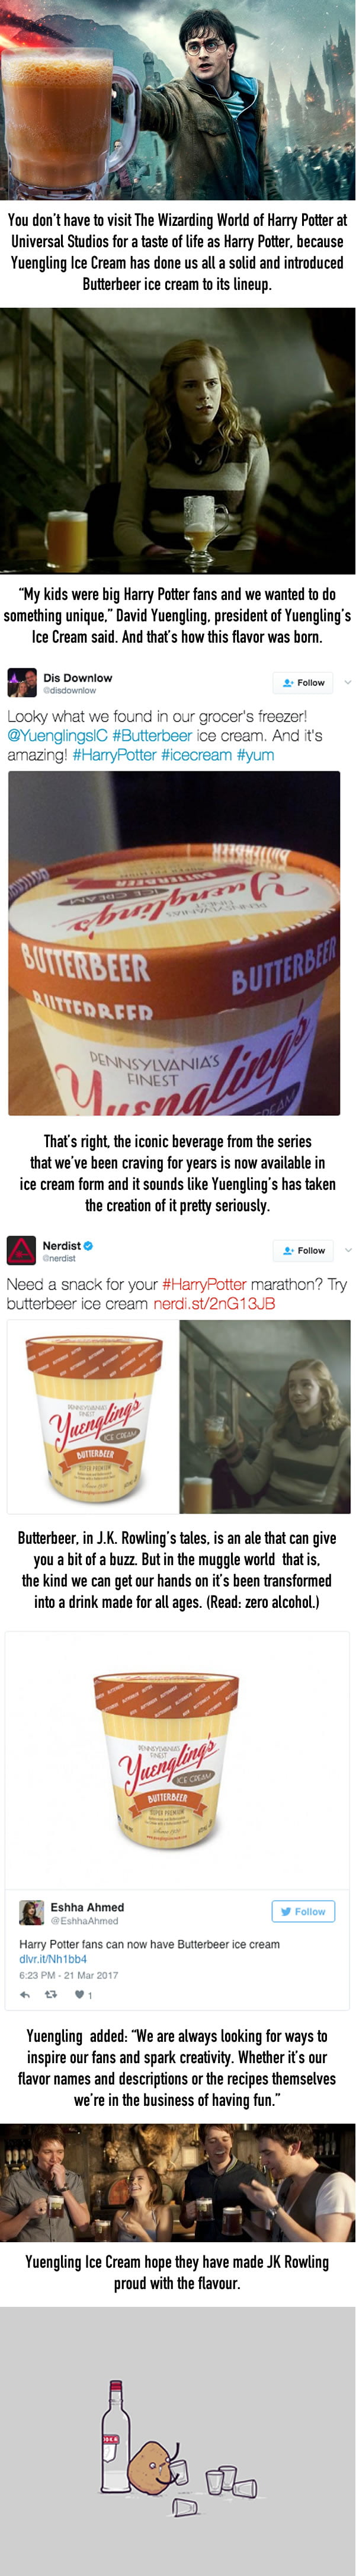 Yuengling Makes Magical Butterbeer Ice Cream For Potterheads